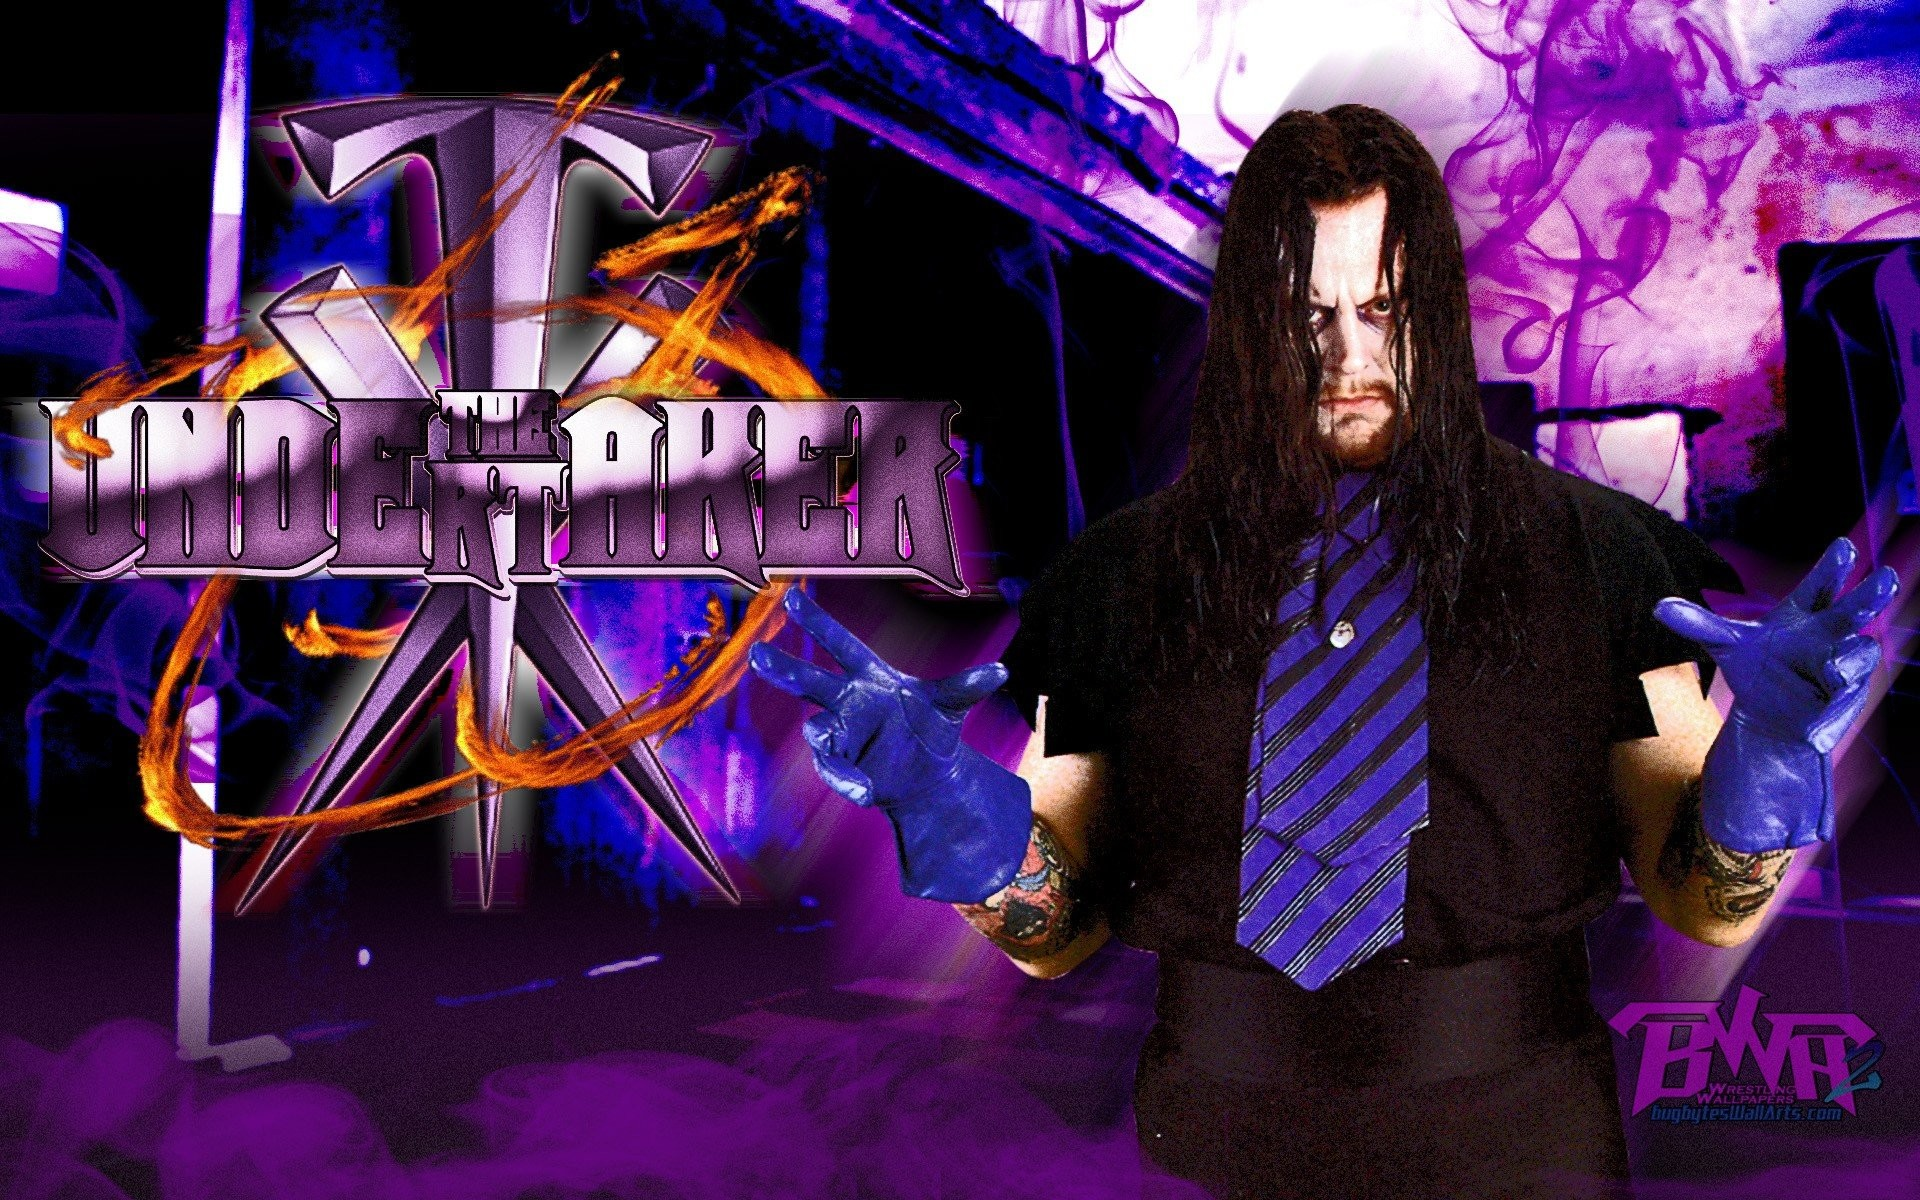 1920x1200 The Undertaker WWE Wrestling